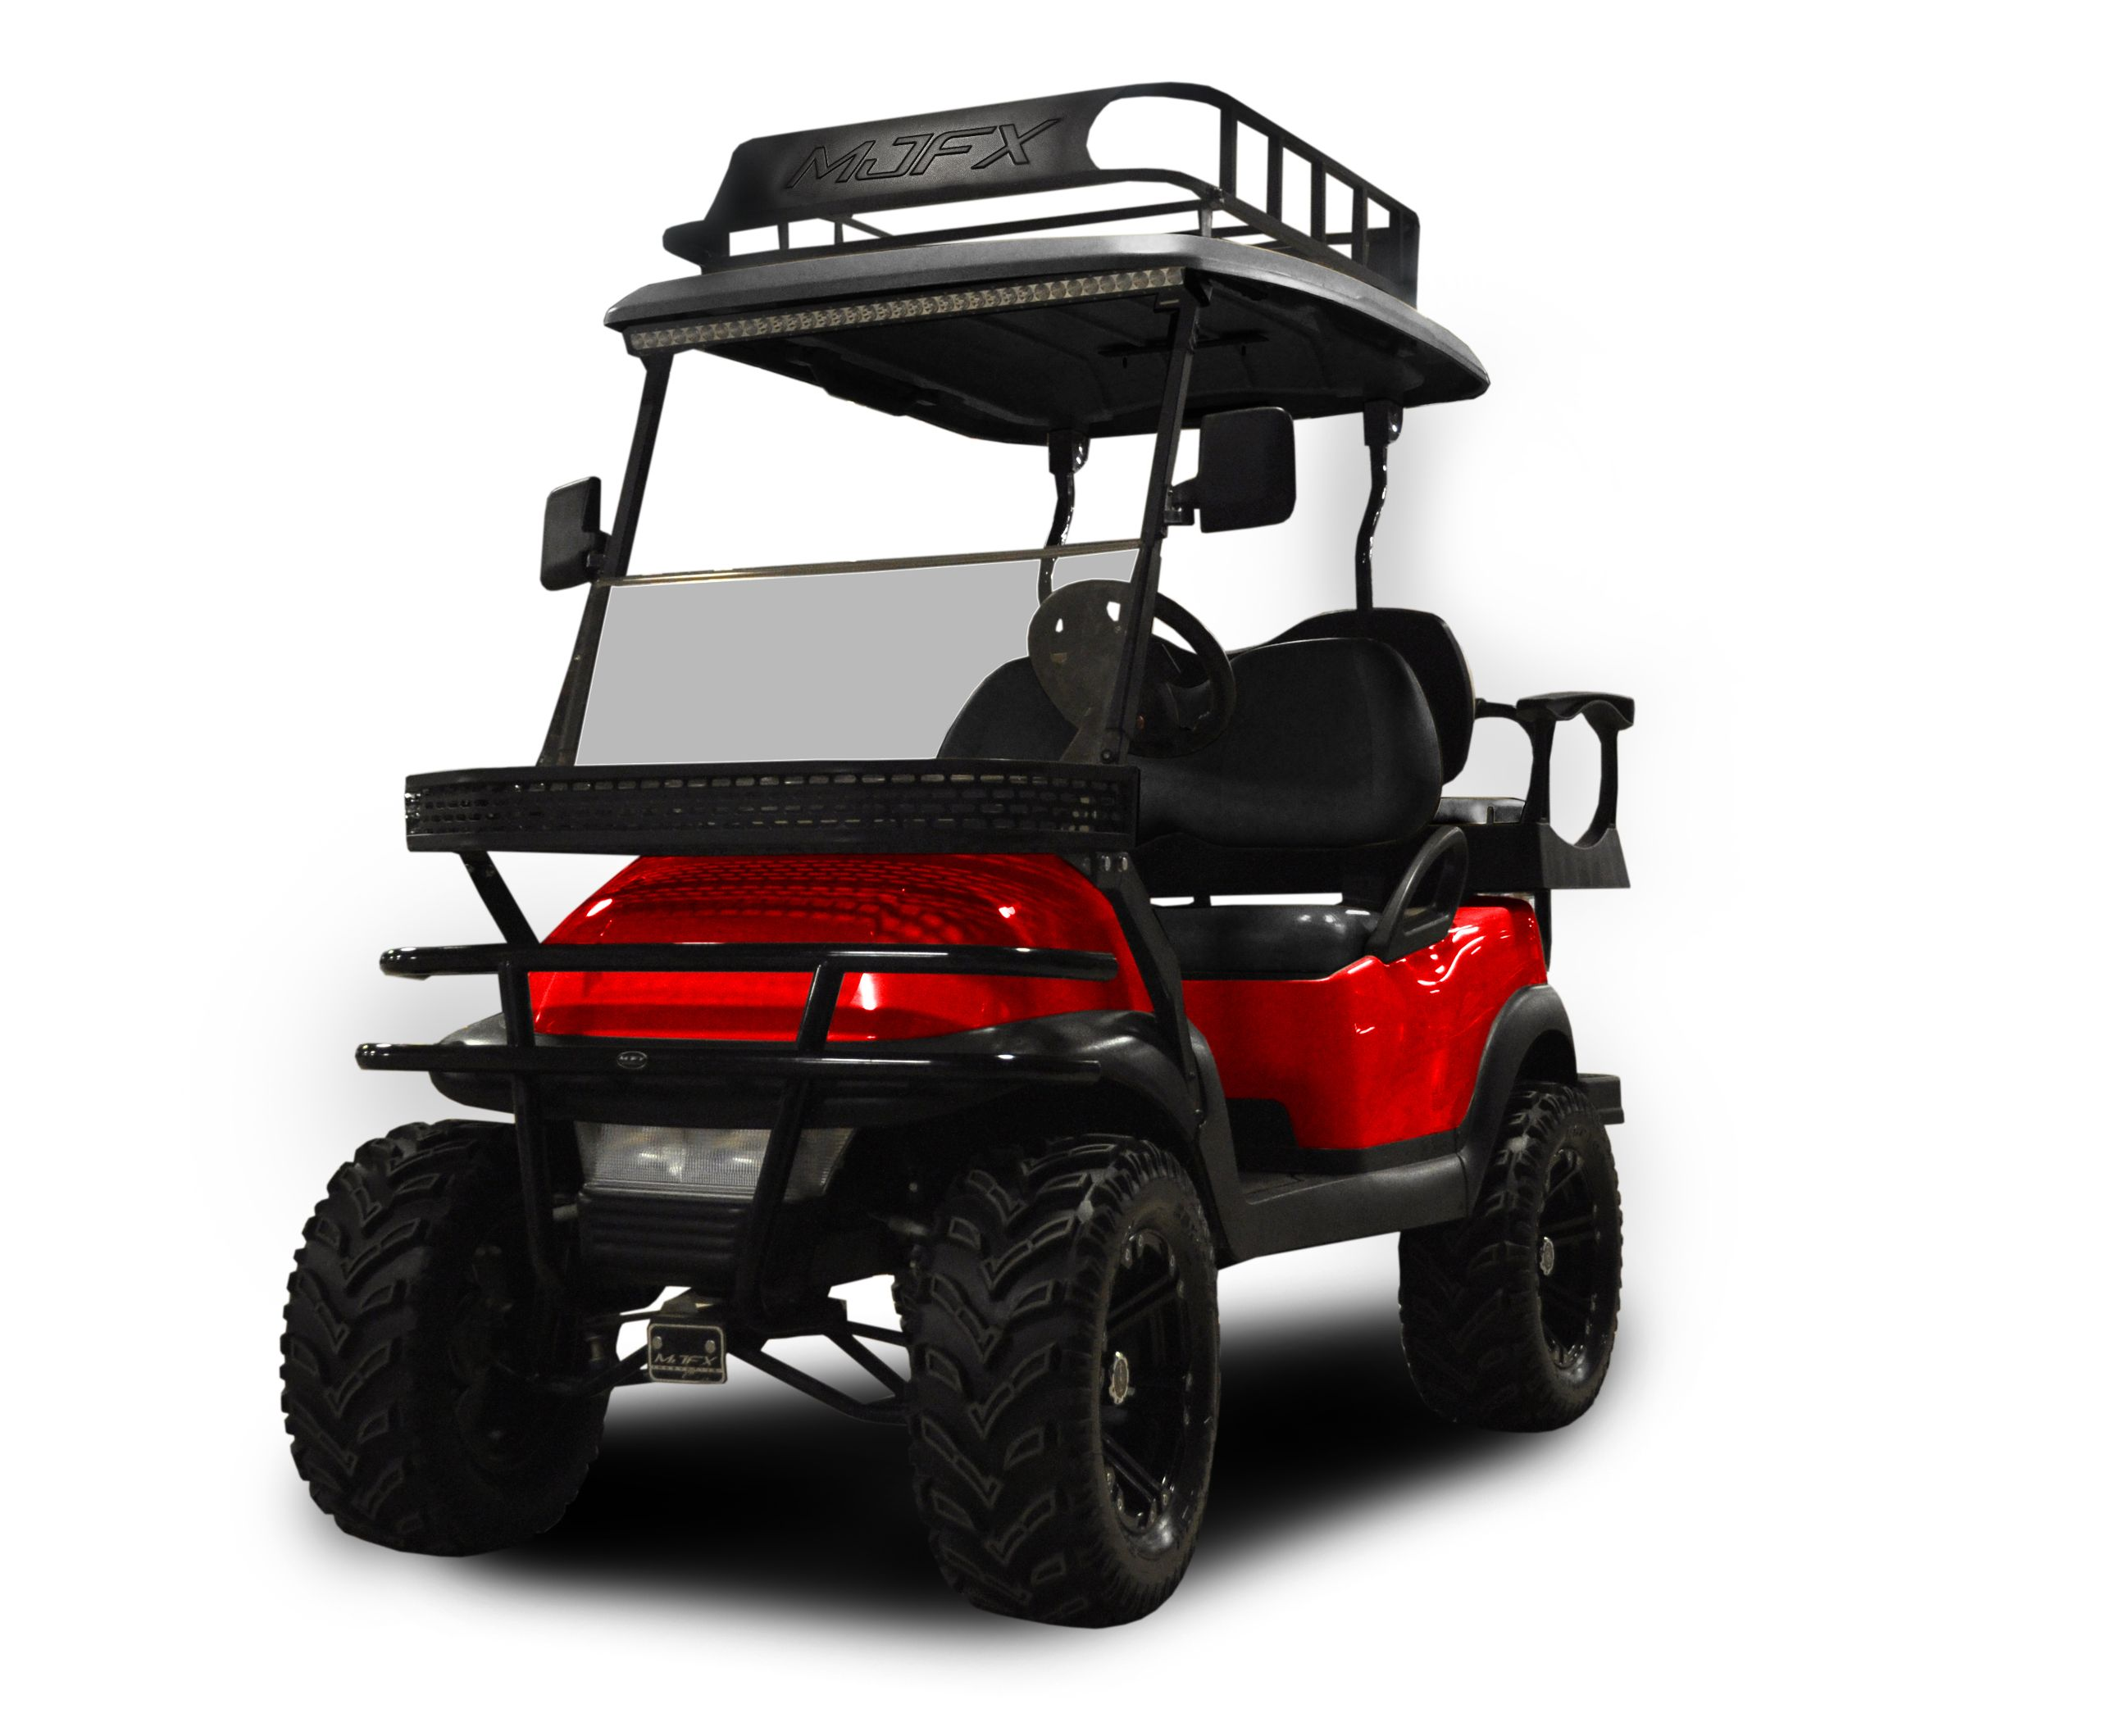 Golf Cart Top Roof Rack Roof Golf Cart Light Kit on golf cart light kits, golf cart trunk kits, golf cart dashboard kits, golf cart horn kits, golf cart frame kits, golf cart building kits, golf cart dump bed kits, golf cart windshield kits, golf cart carpet kits, golf cart speedometer kits, golf cart garage kits, golf cart speaker kits, golf cart dash kits, golf cart seat belt kits, golf cart canopy kits,